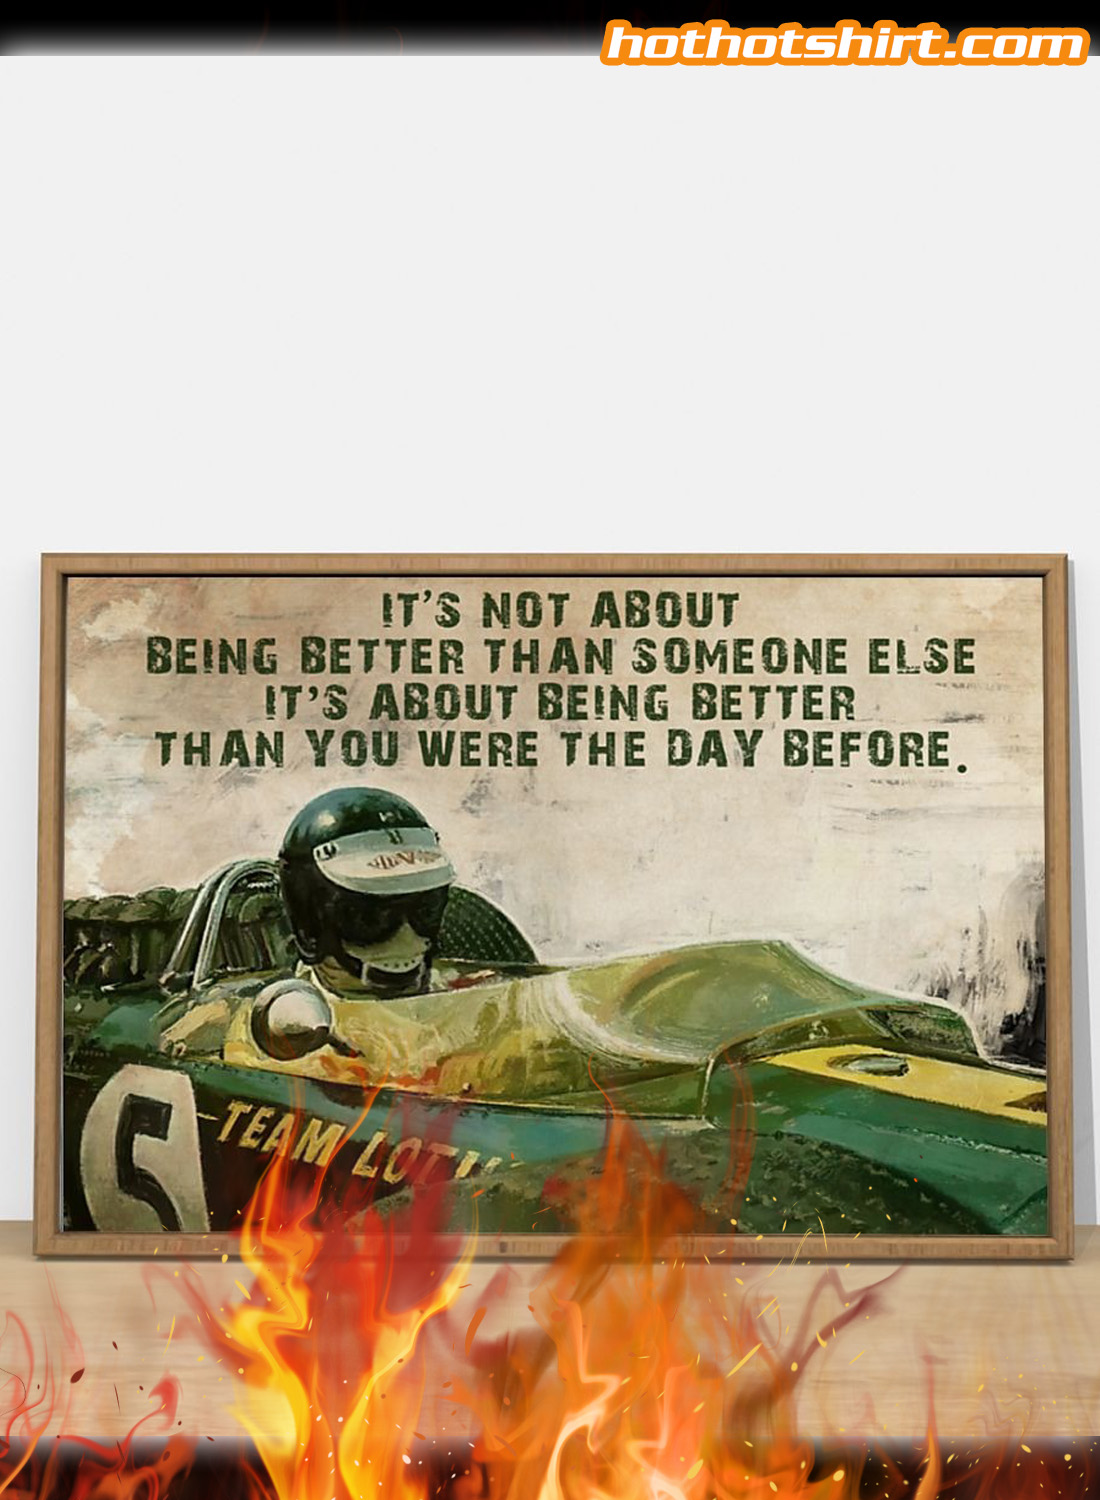 Forza Motorsport Racer It's not about being better than someone else poster 1